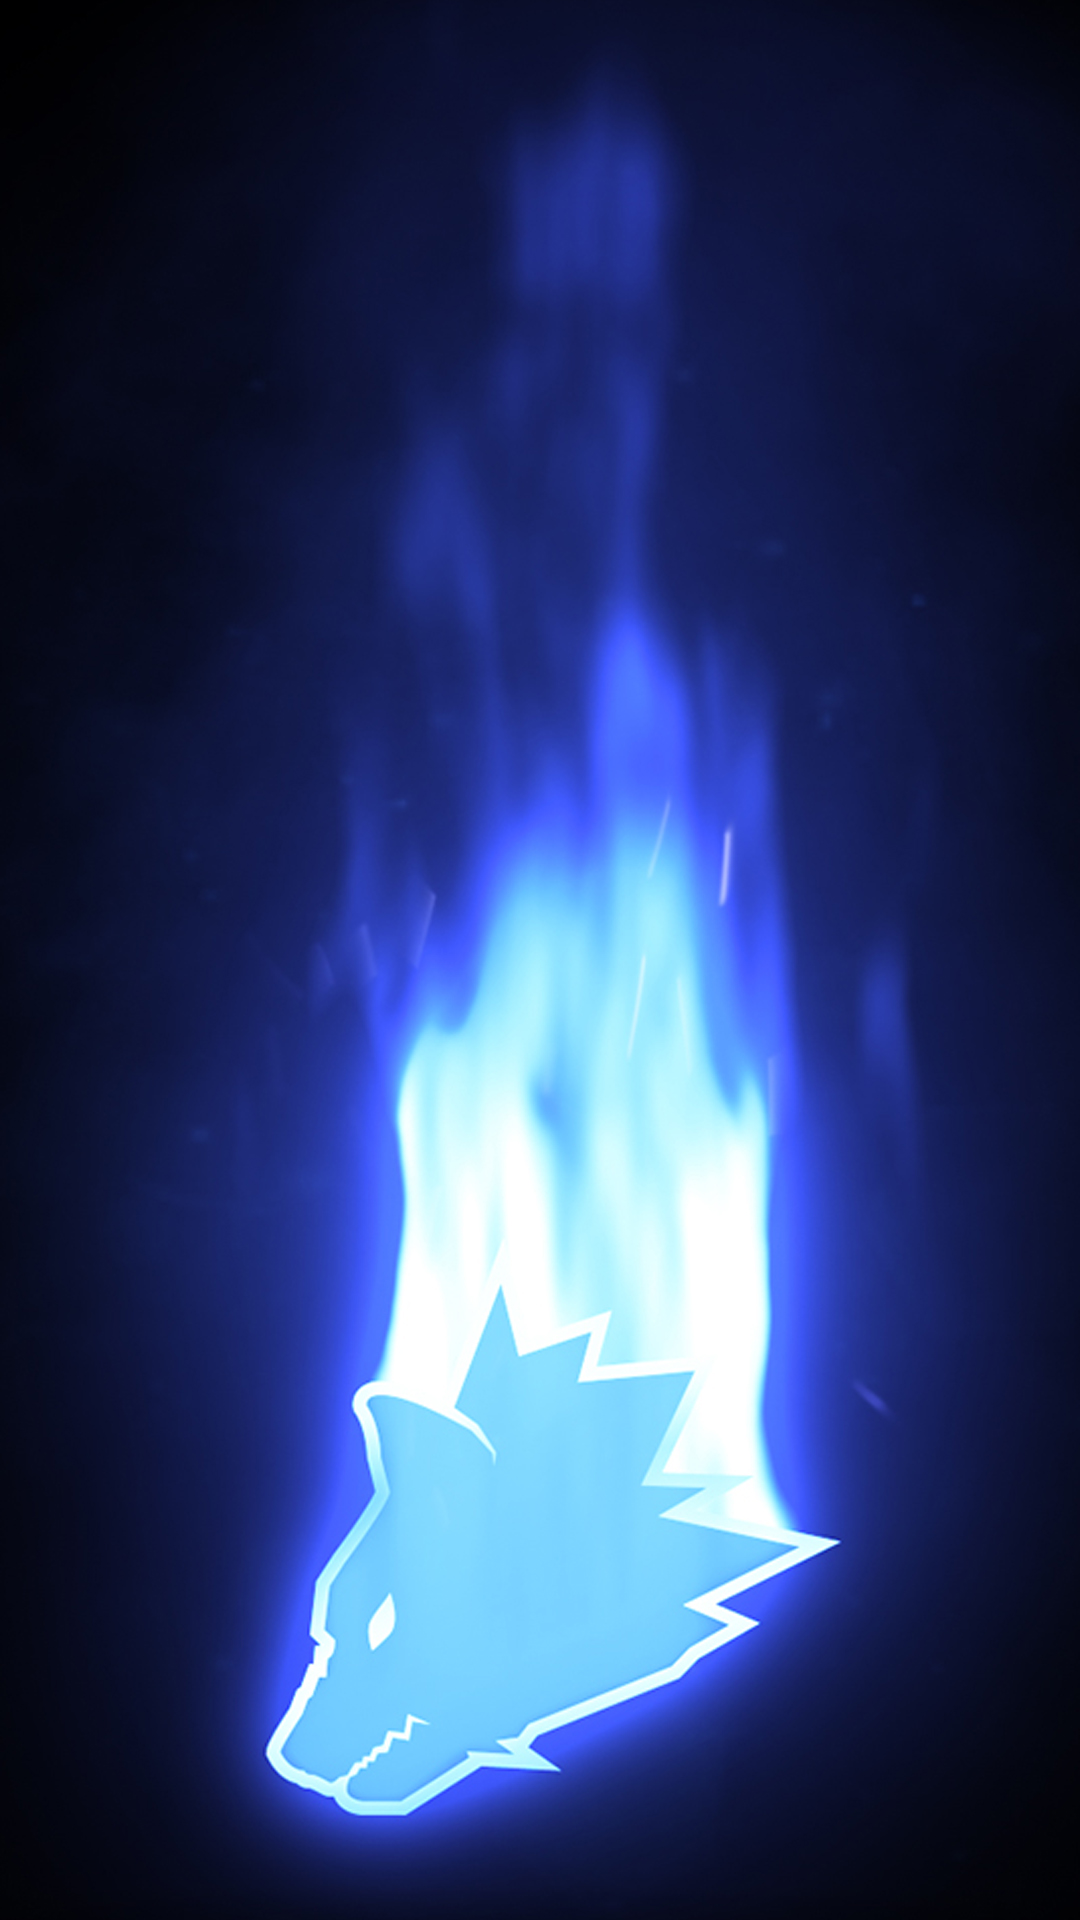 MOBILE WALLPAPERFLAME - DOWNLOAD (1080 x 1920)